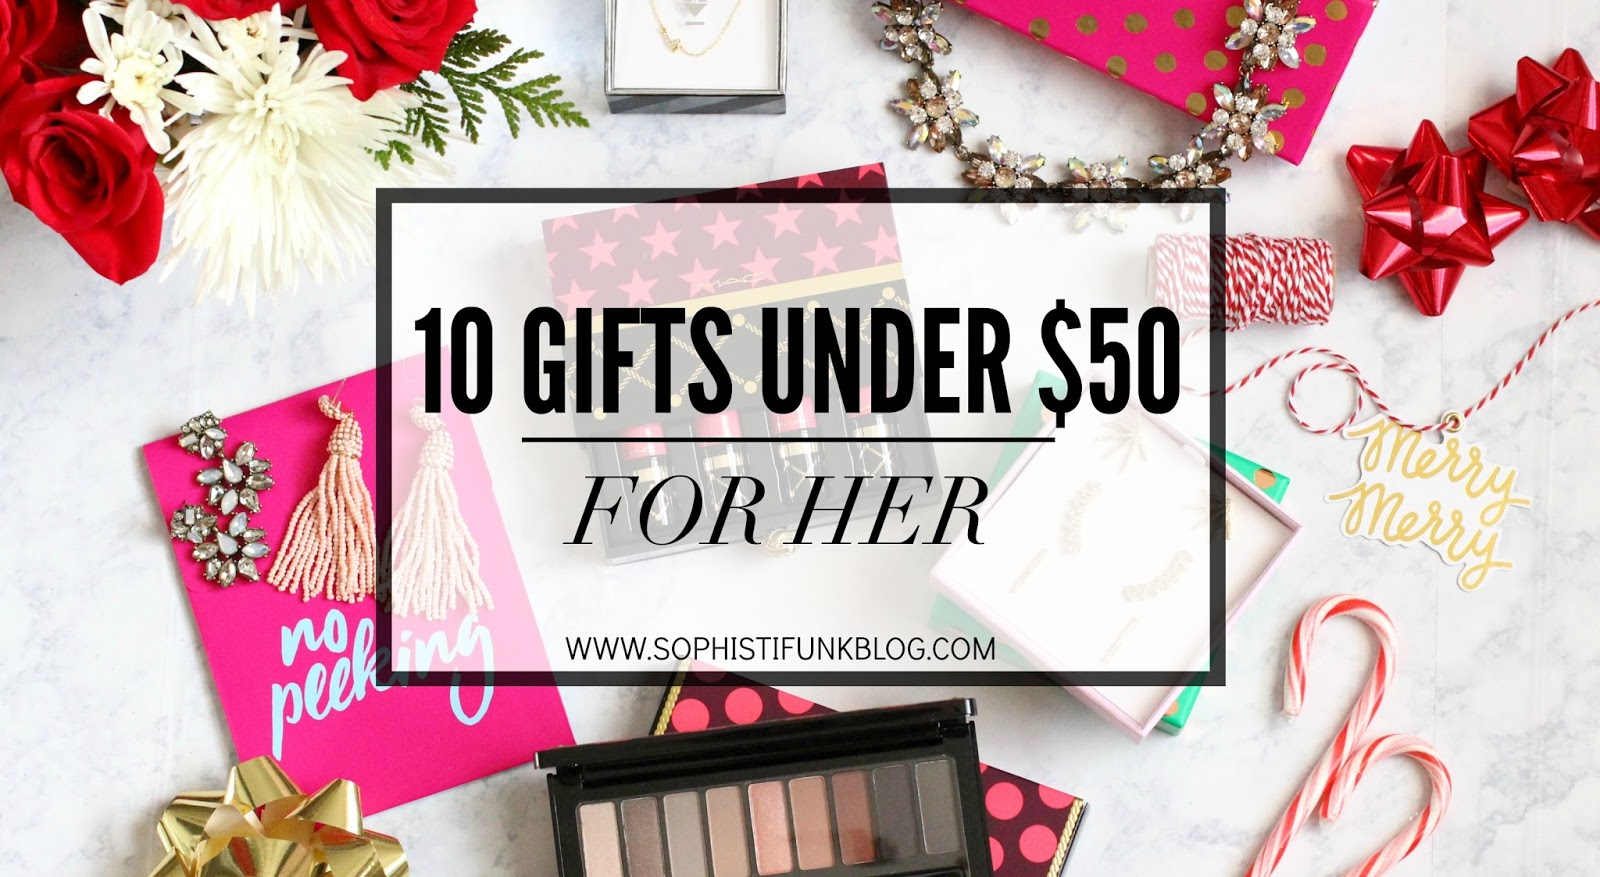 10 Gifts Under $50: For Her